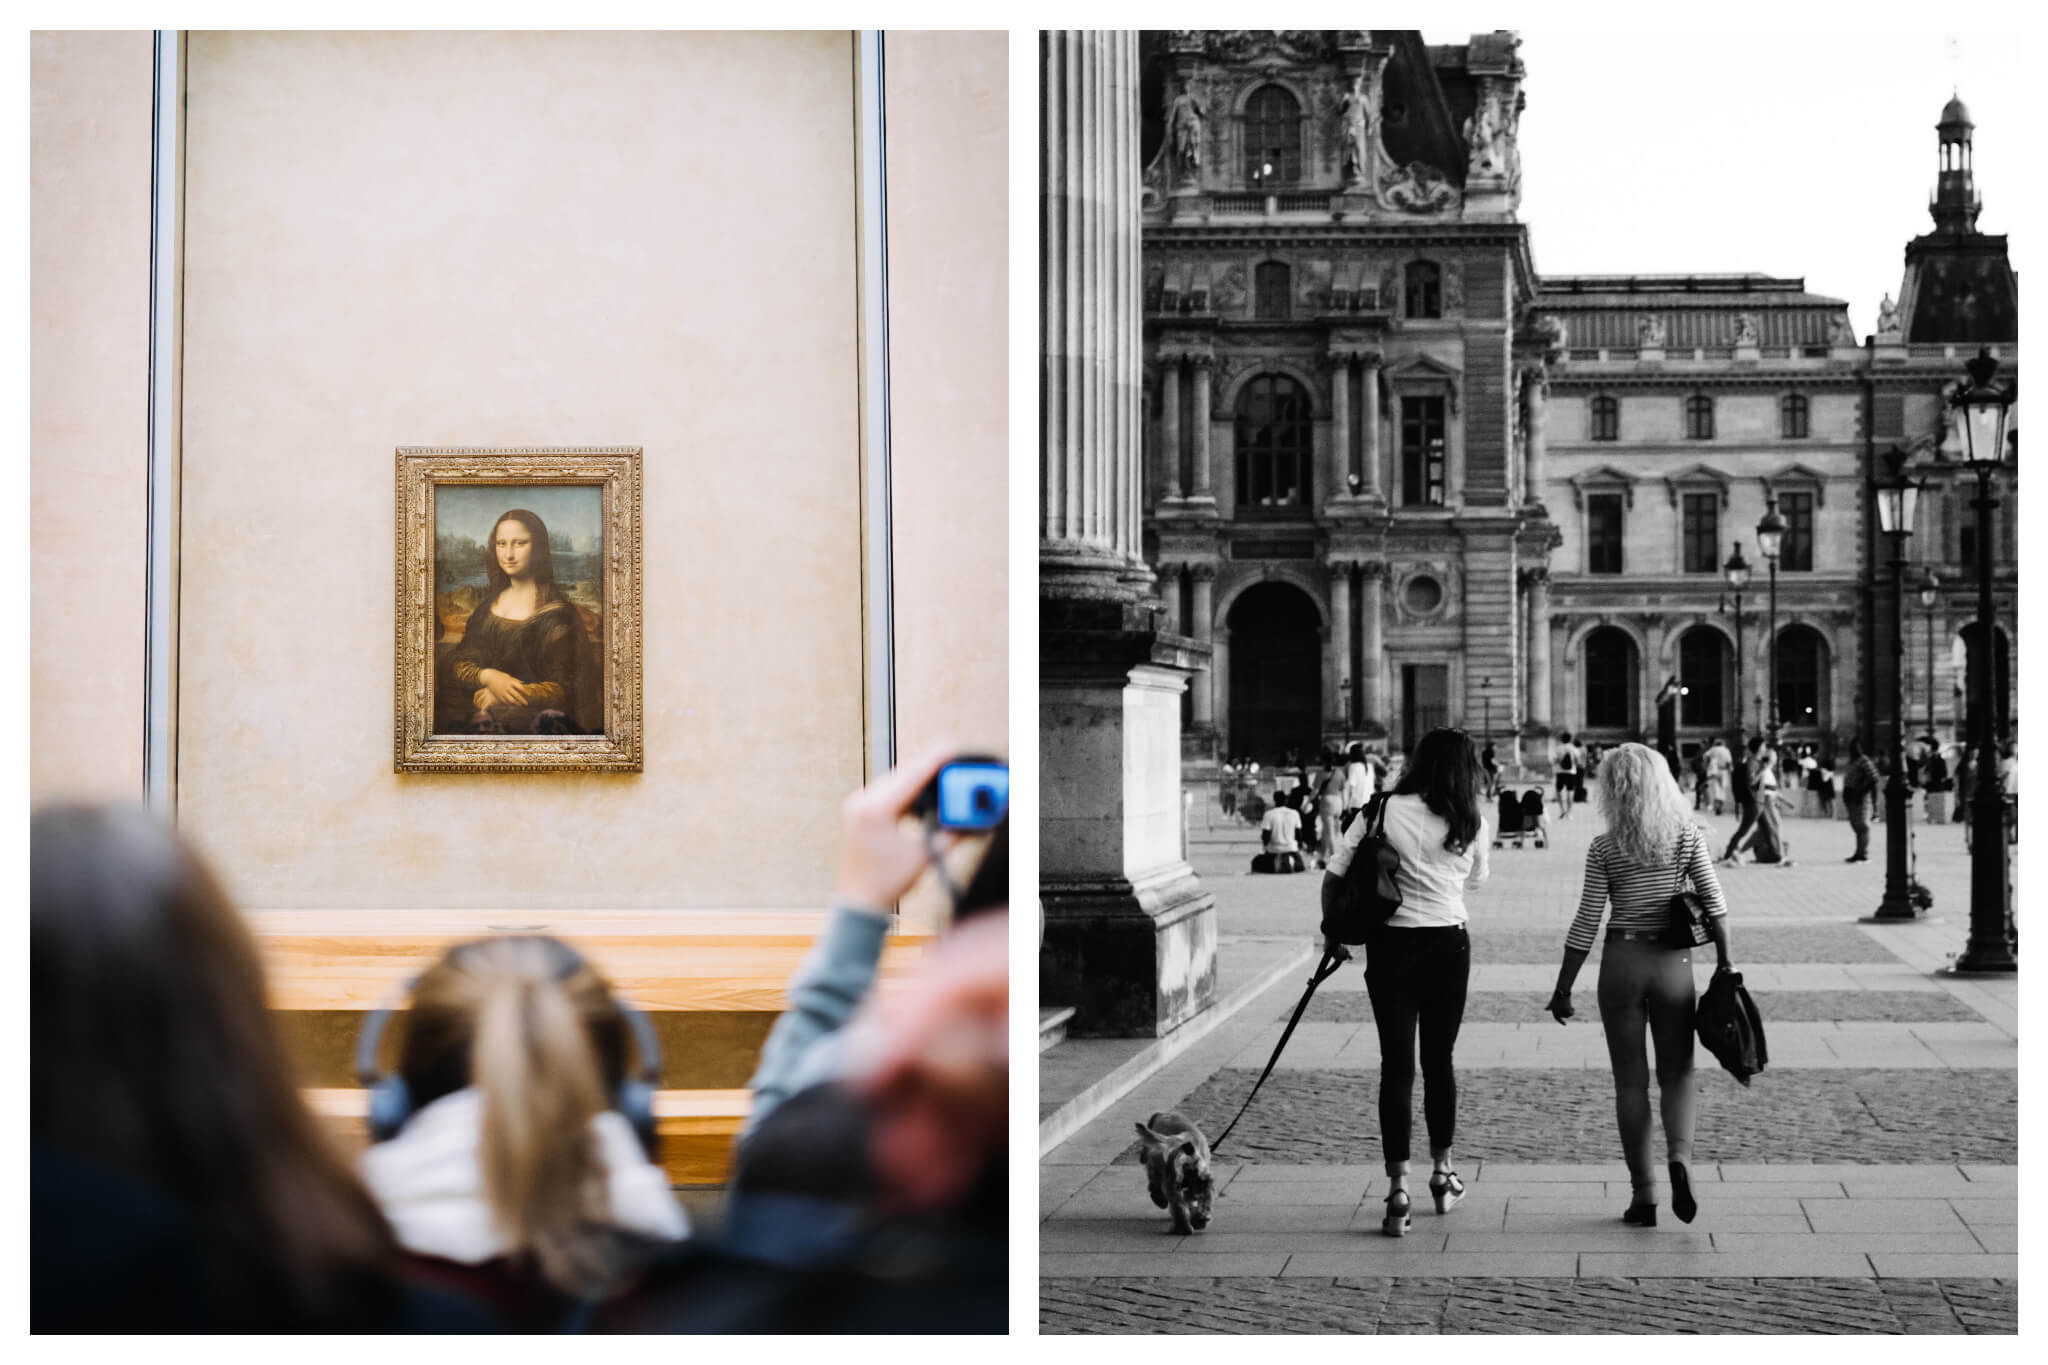 Left: Leonardo de Vinci's Mona Lisa painting hanging on a wall in the Louvre Museum with people standing in front of it. One is listening to an audio device, another is taking a photo of the painting. They are out of focus. Right: a black and white photograph of two women walking outside the Louvre Museum. One is walking a dog. The photo is taken from behind.